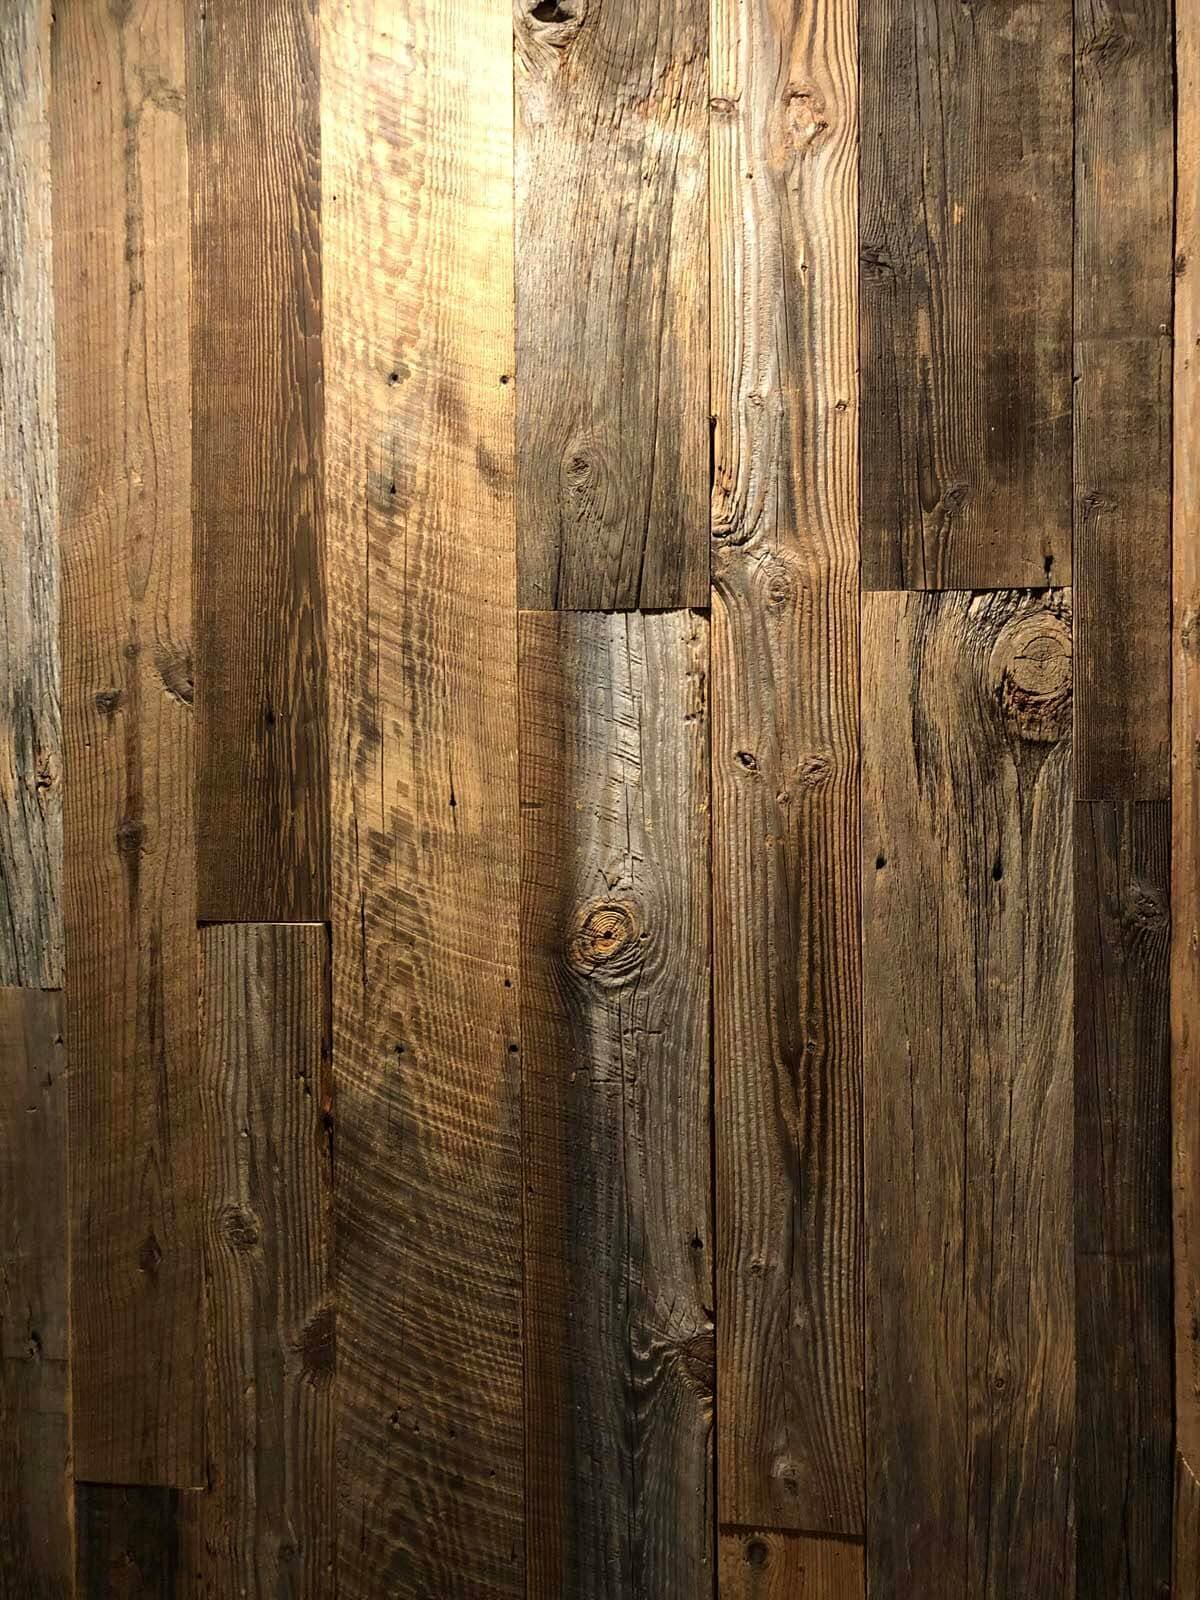 Original Surface Pine Wall Cladding planks in vertical alignment